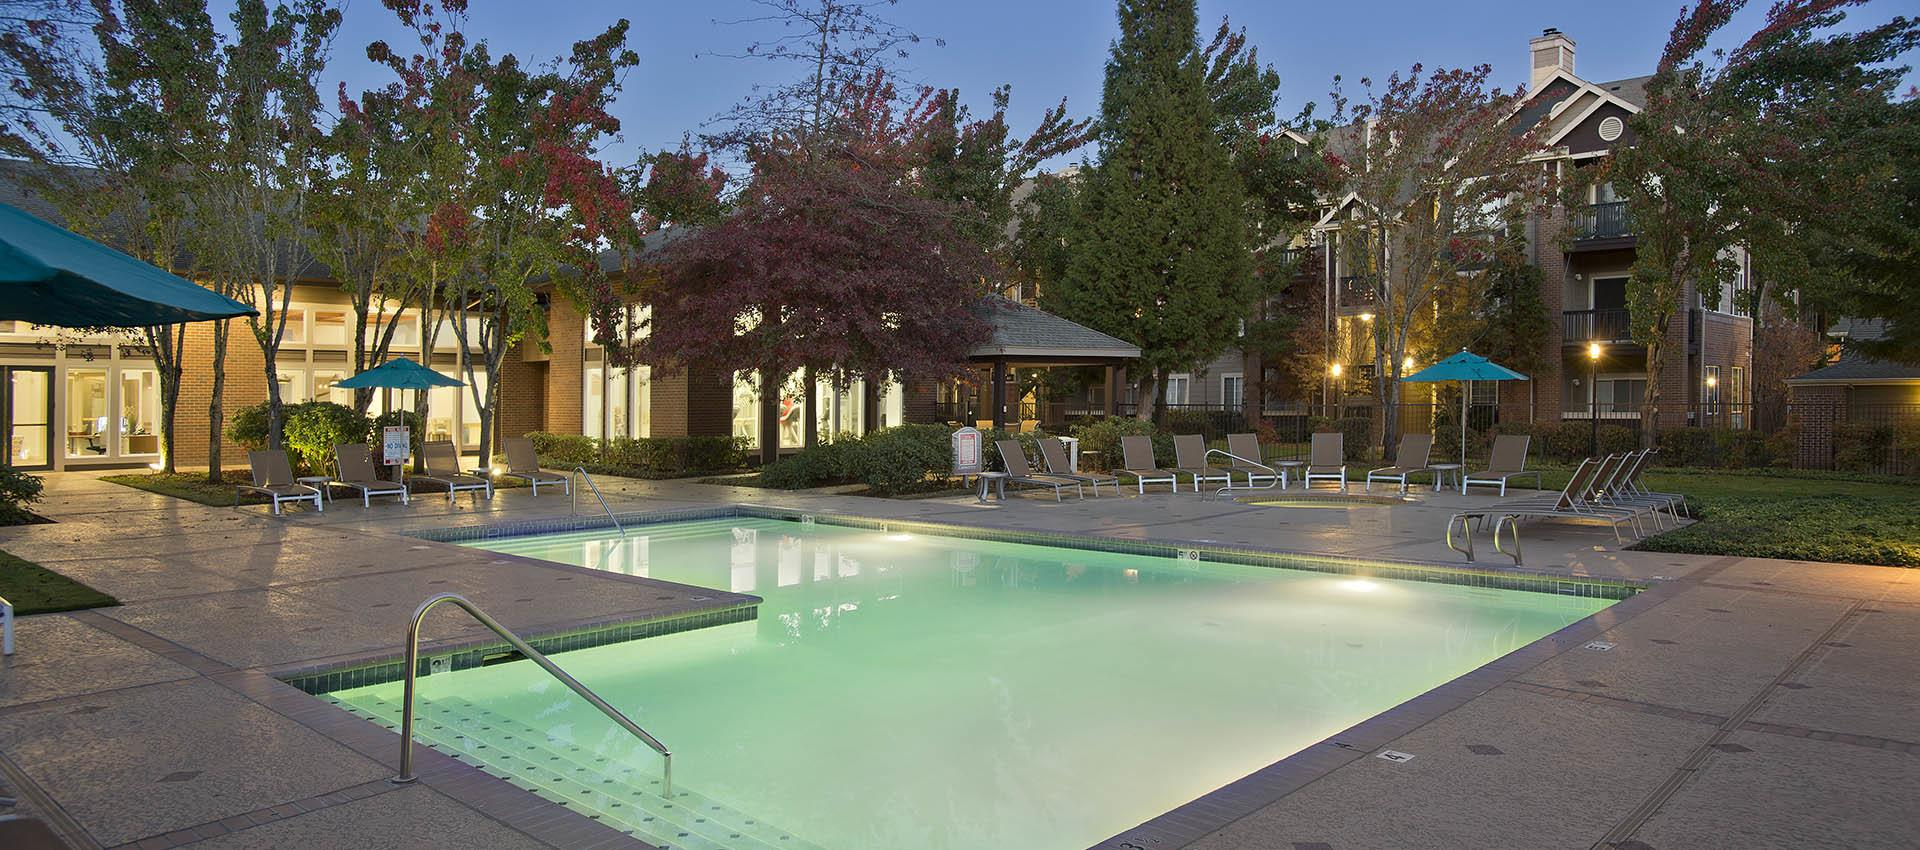 Expansive Pool Deck with WiFi at Cortland Village Apartment Homes in Hillsboro